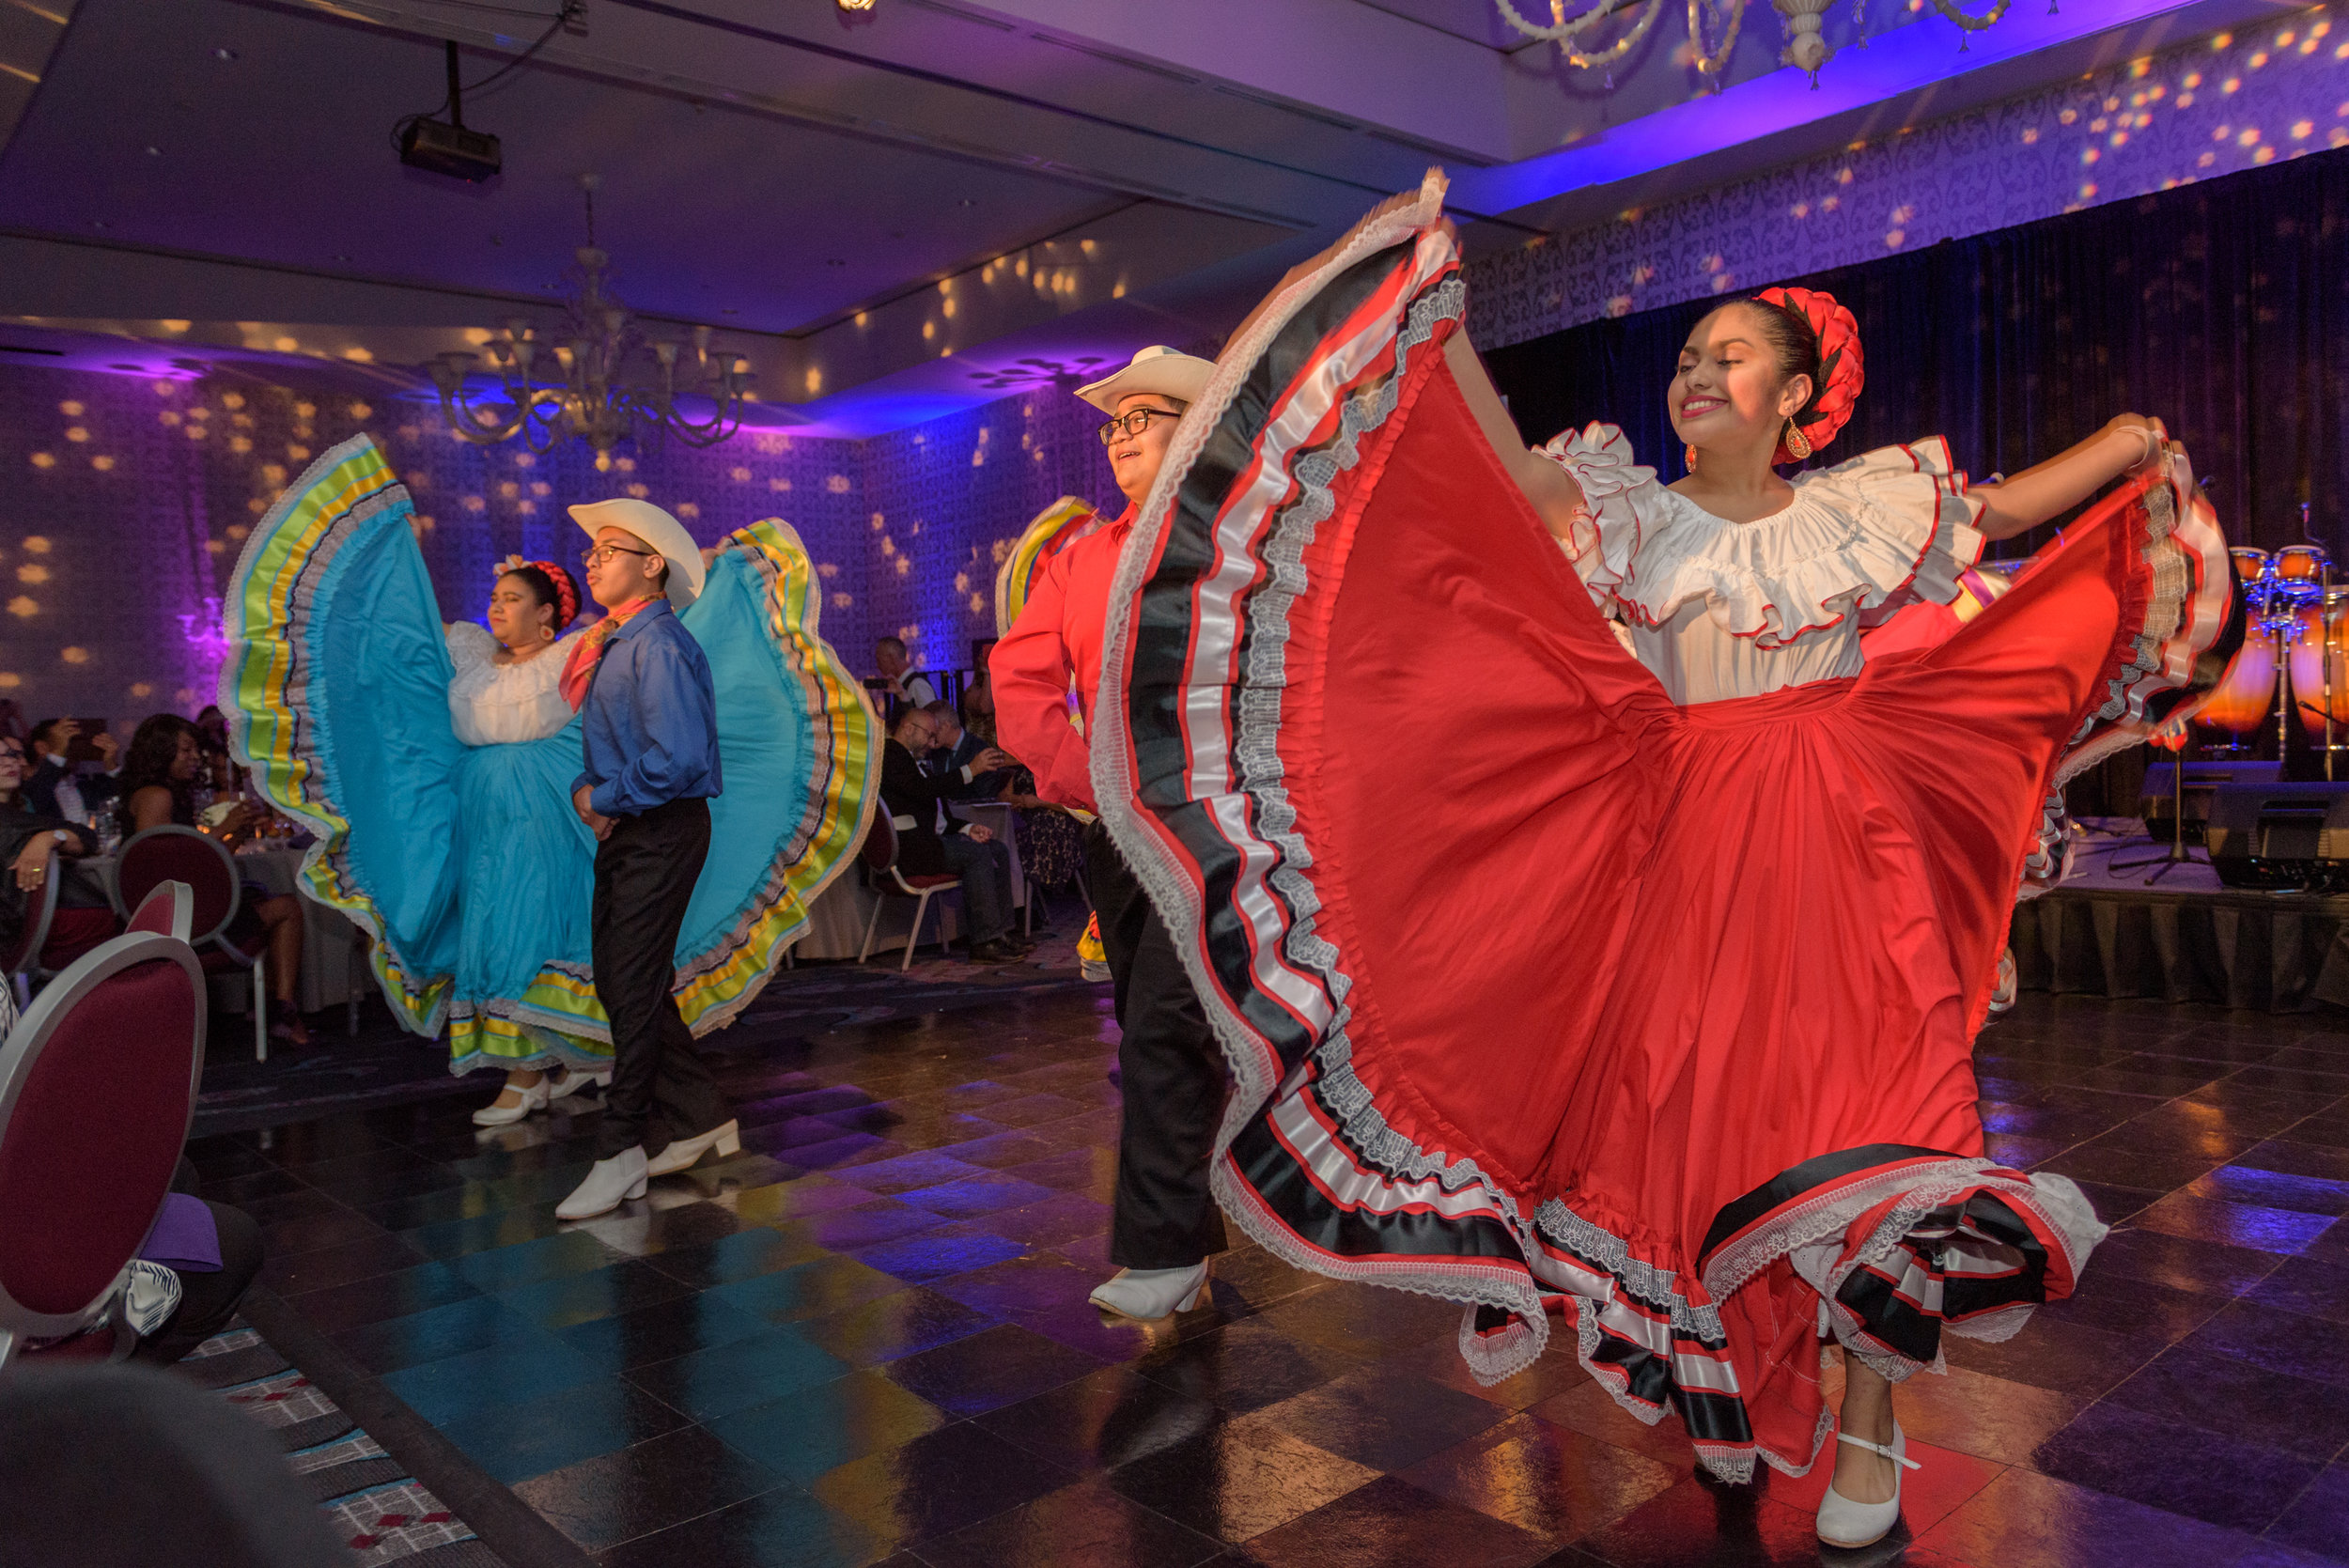 Our amazing Corazones Alegres youth dancers stole the show last Friday!